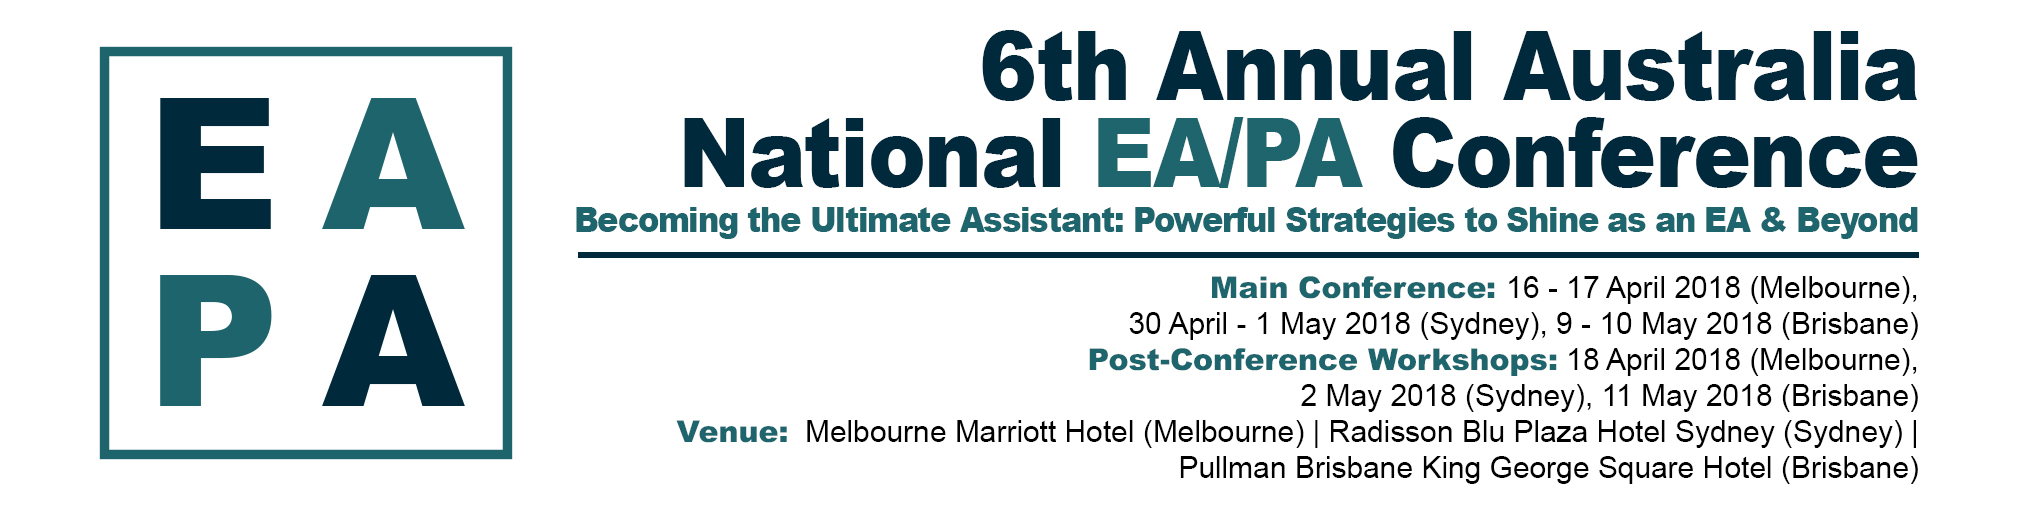 The 6th Annual Australia National EA/PA Conference